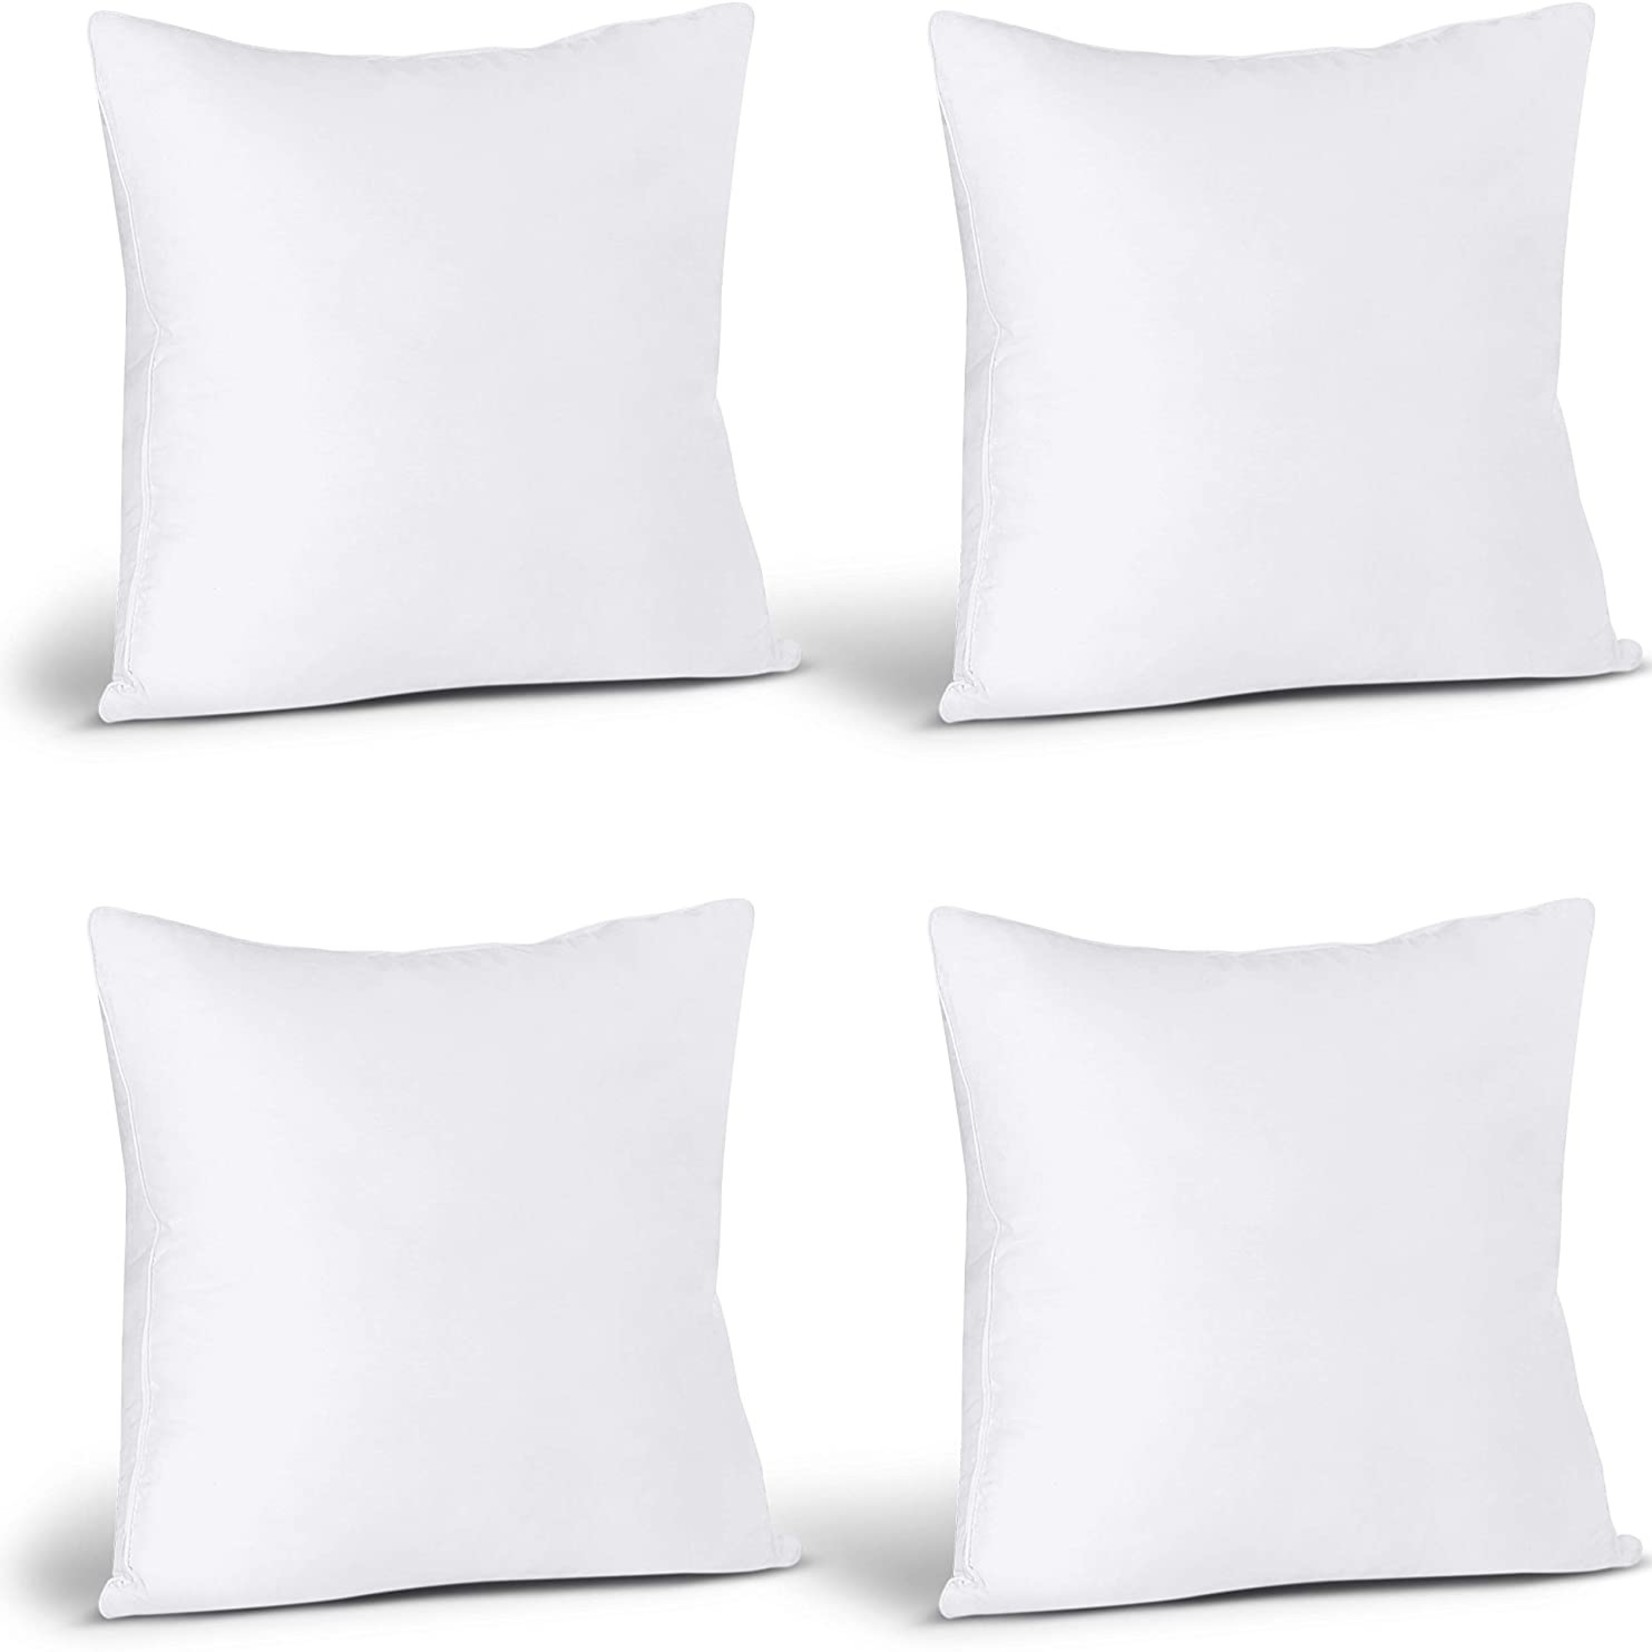 Utopia Bedding Throw Pillows Insert (Pack of 4, White) - 18 x 18 Inches Bed and Couch Pillows